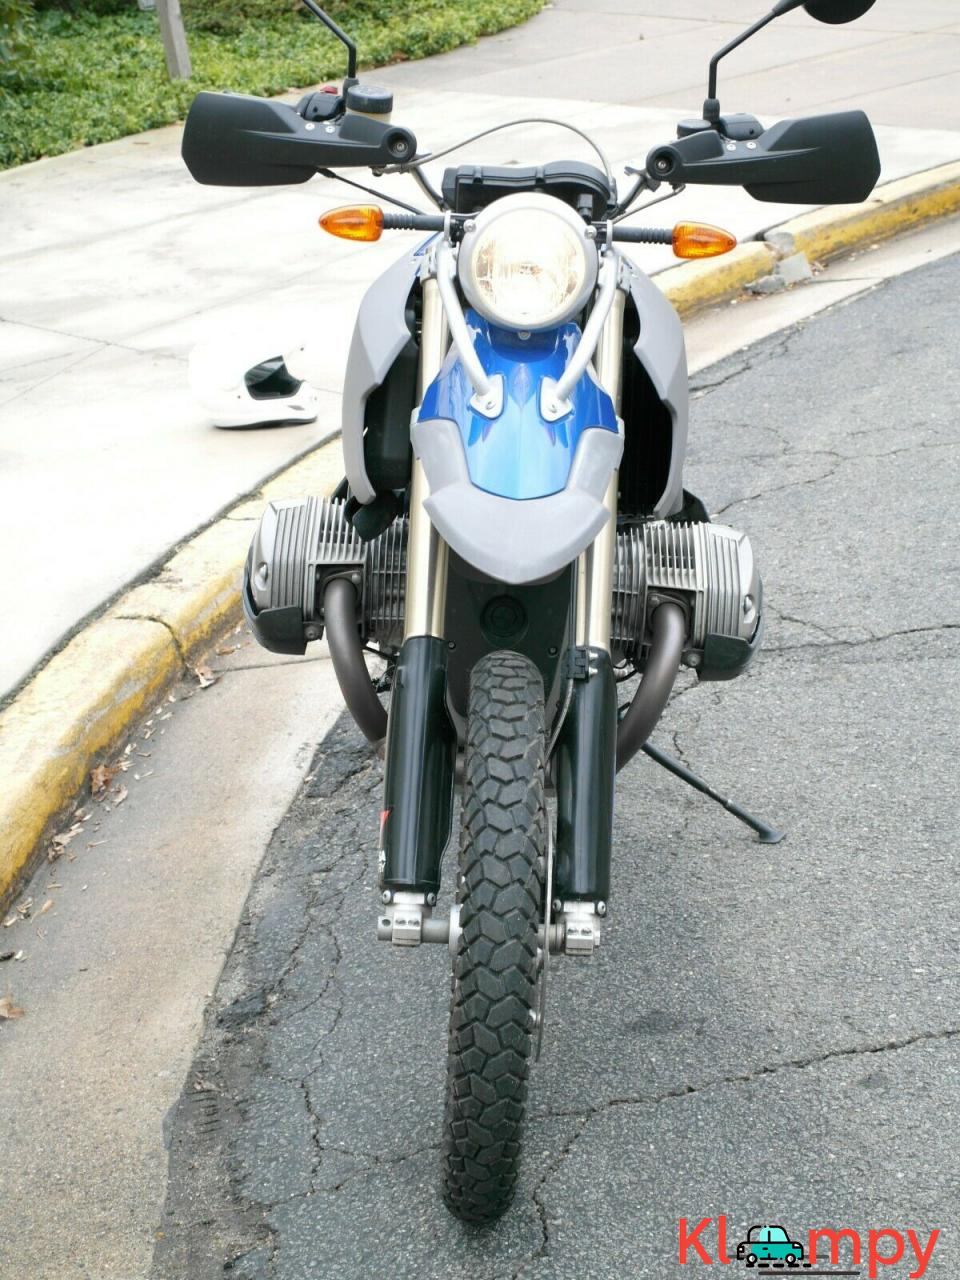 2006 BMW Enduro Blue - 7/18